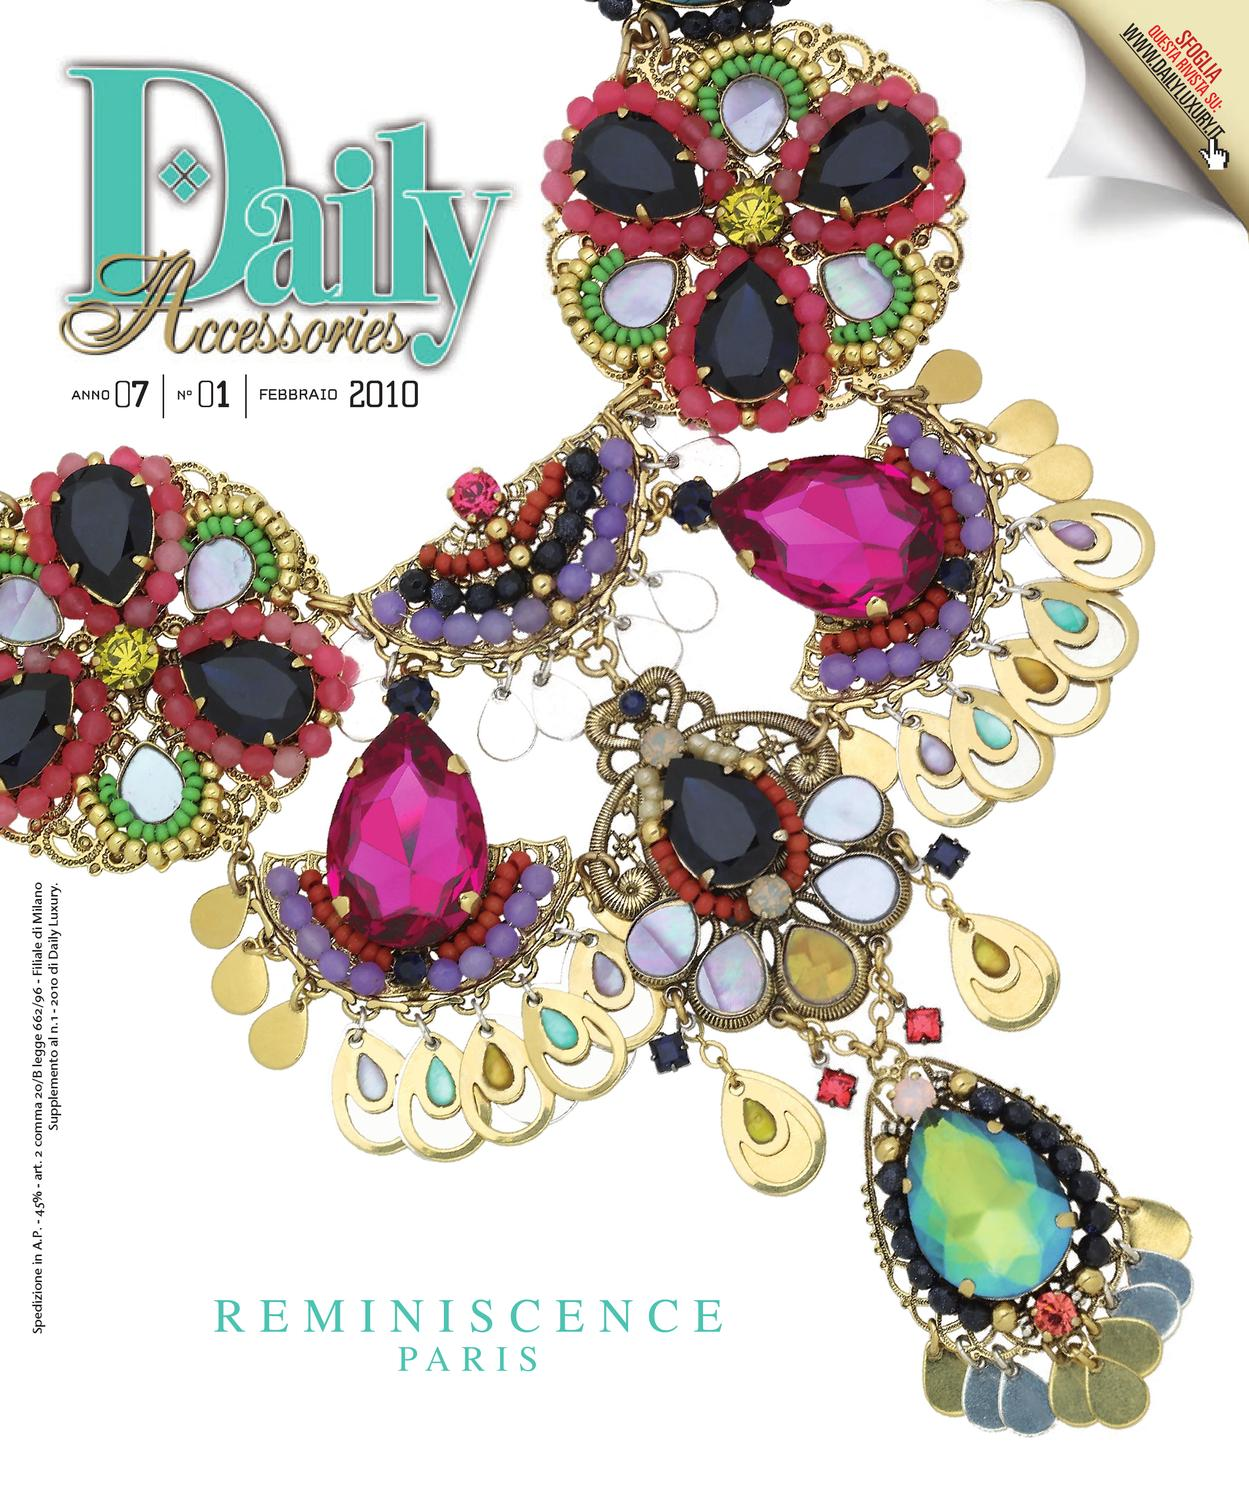 Daily Issuu By Febbraio Luxury 2010 1 AccessoiresN OlwZTkXuPi